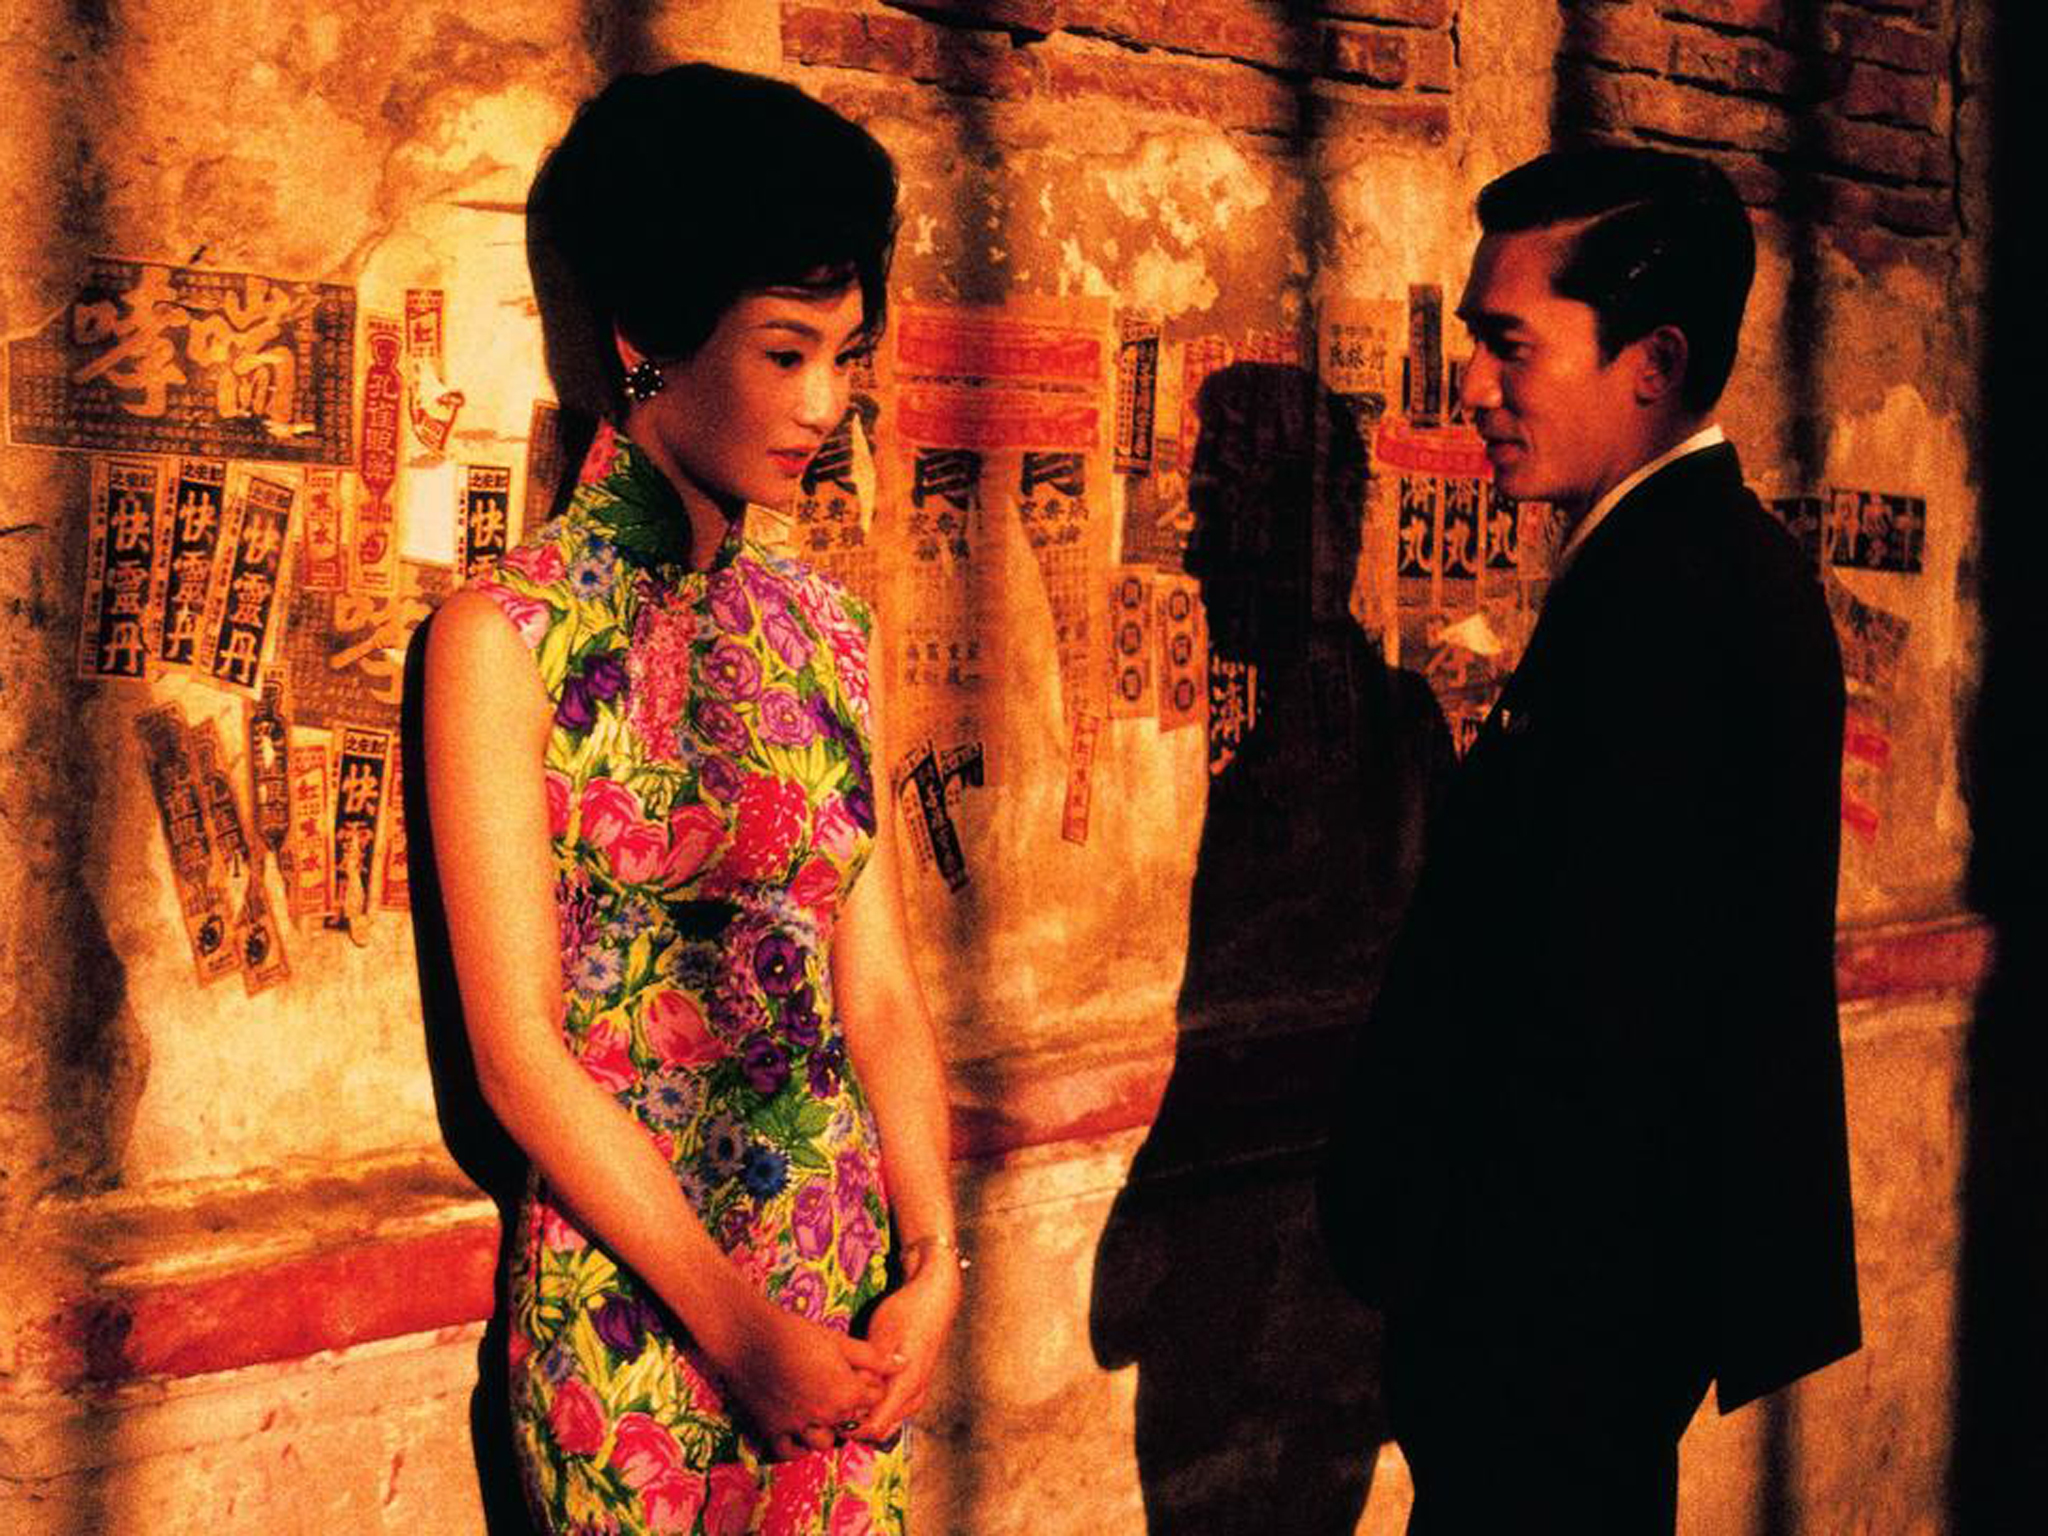 The 100 best Hong Kong movies